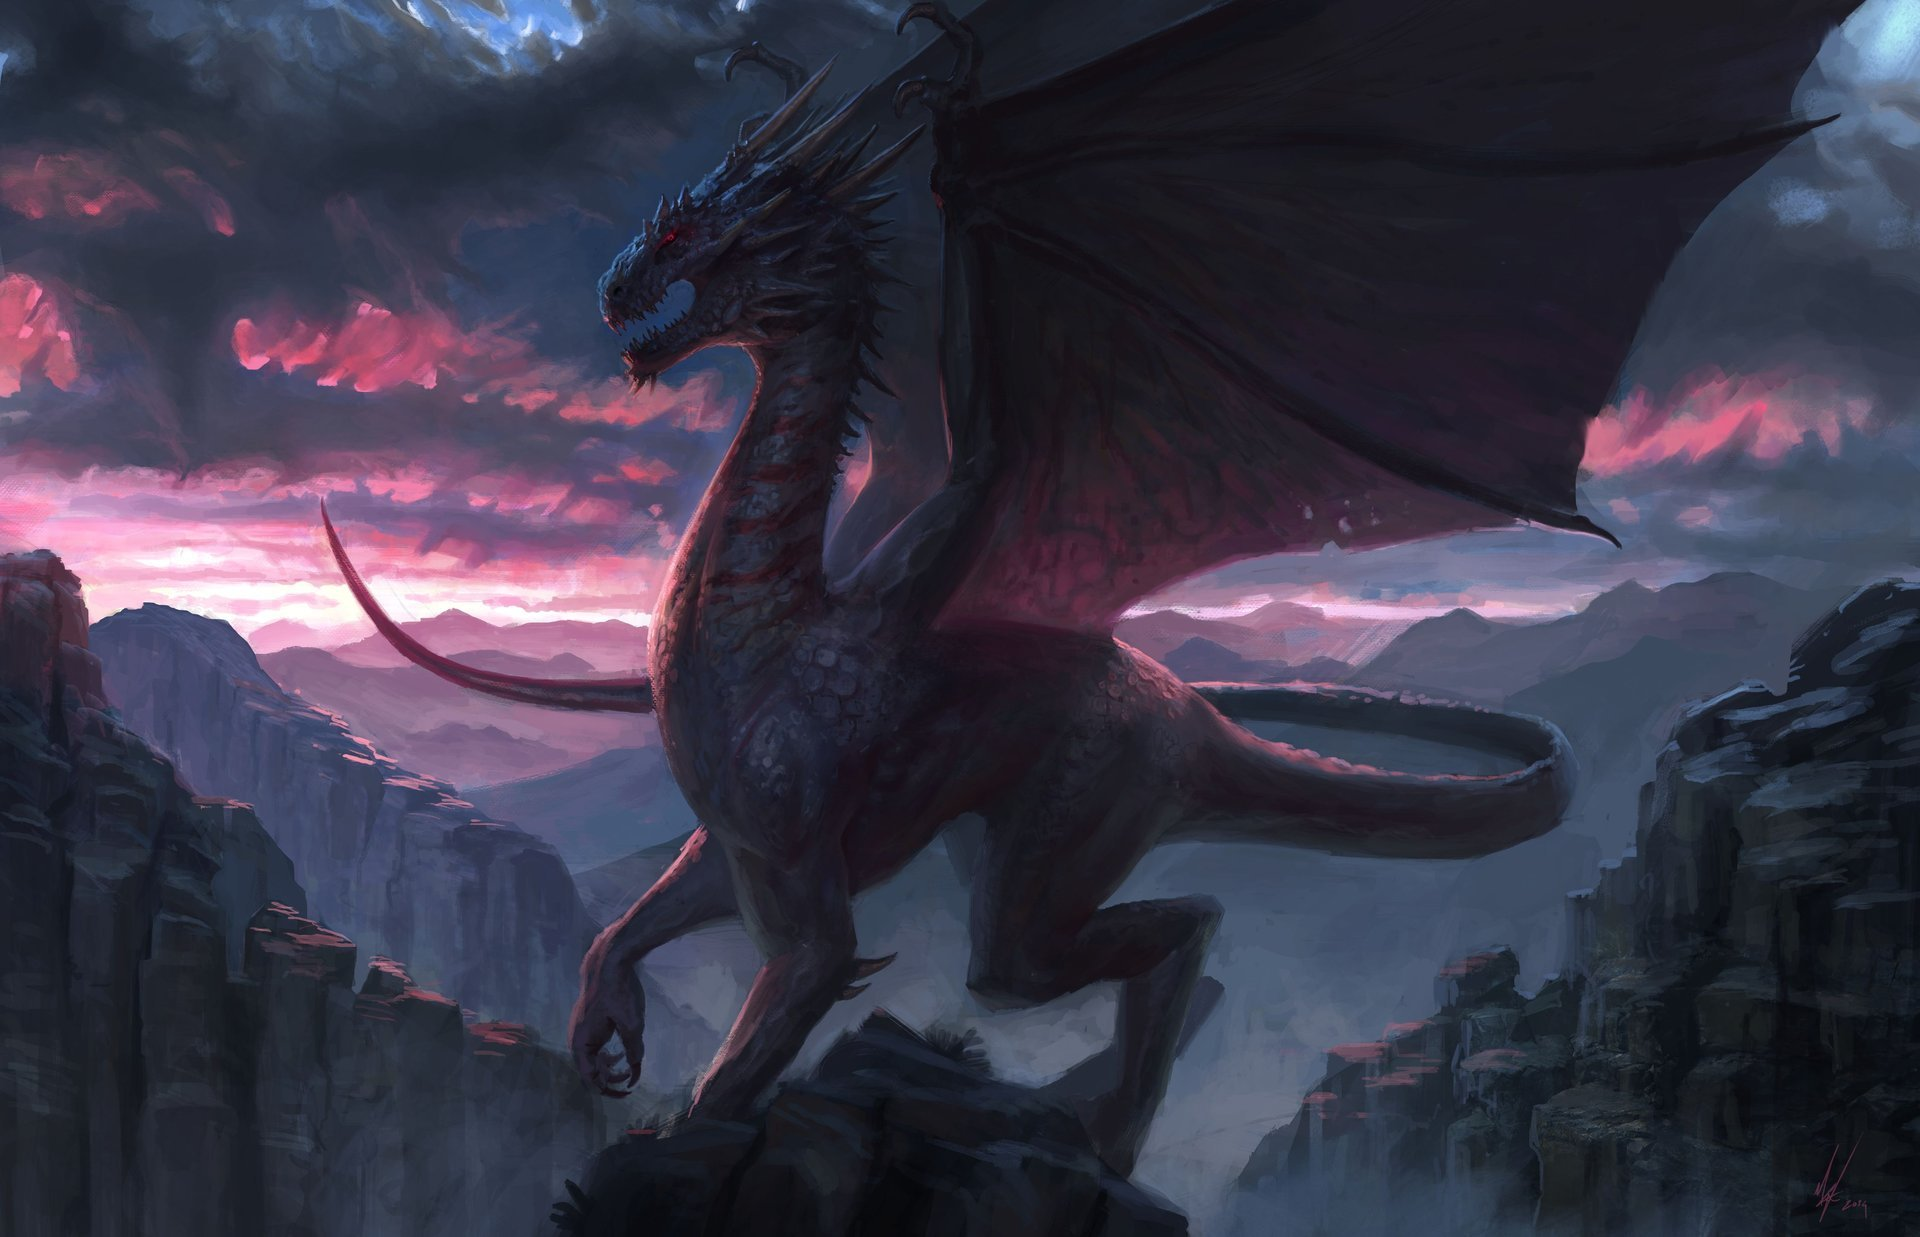 113503 download wallpaper Dragon, Rock, Fantasy, Art screensavers and pictures for free